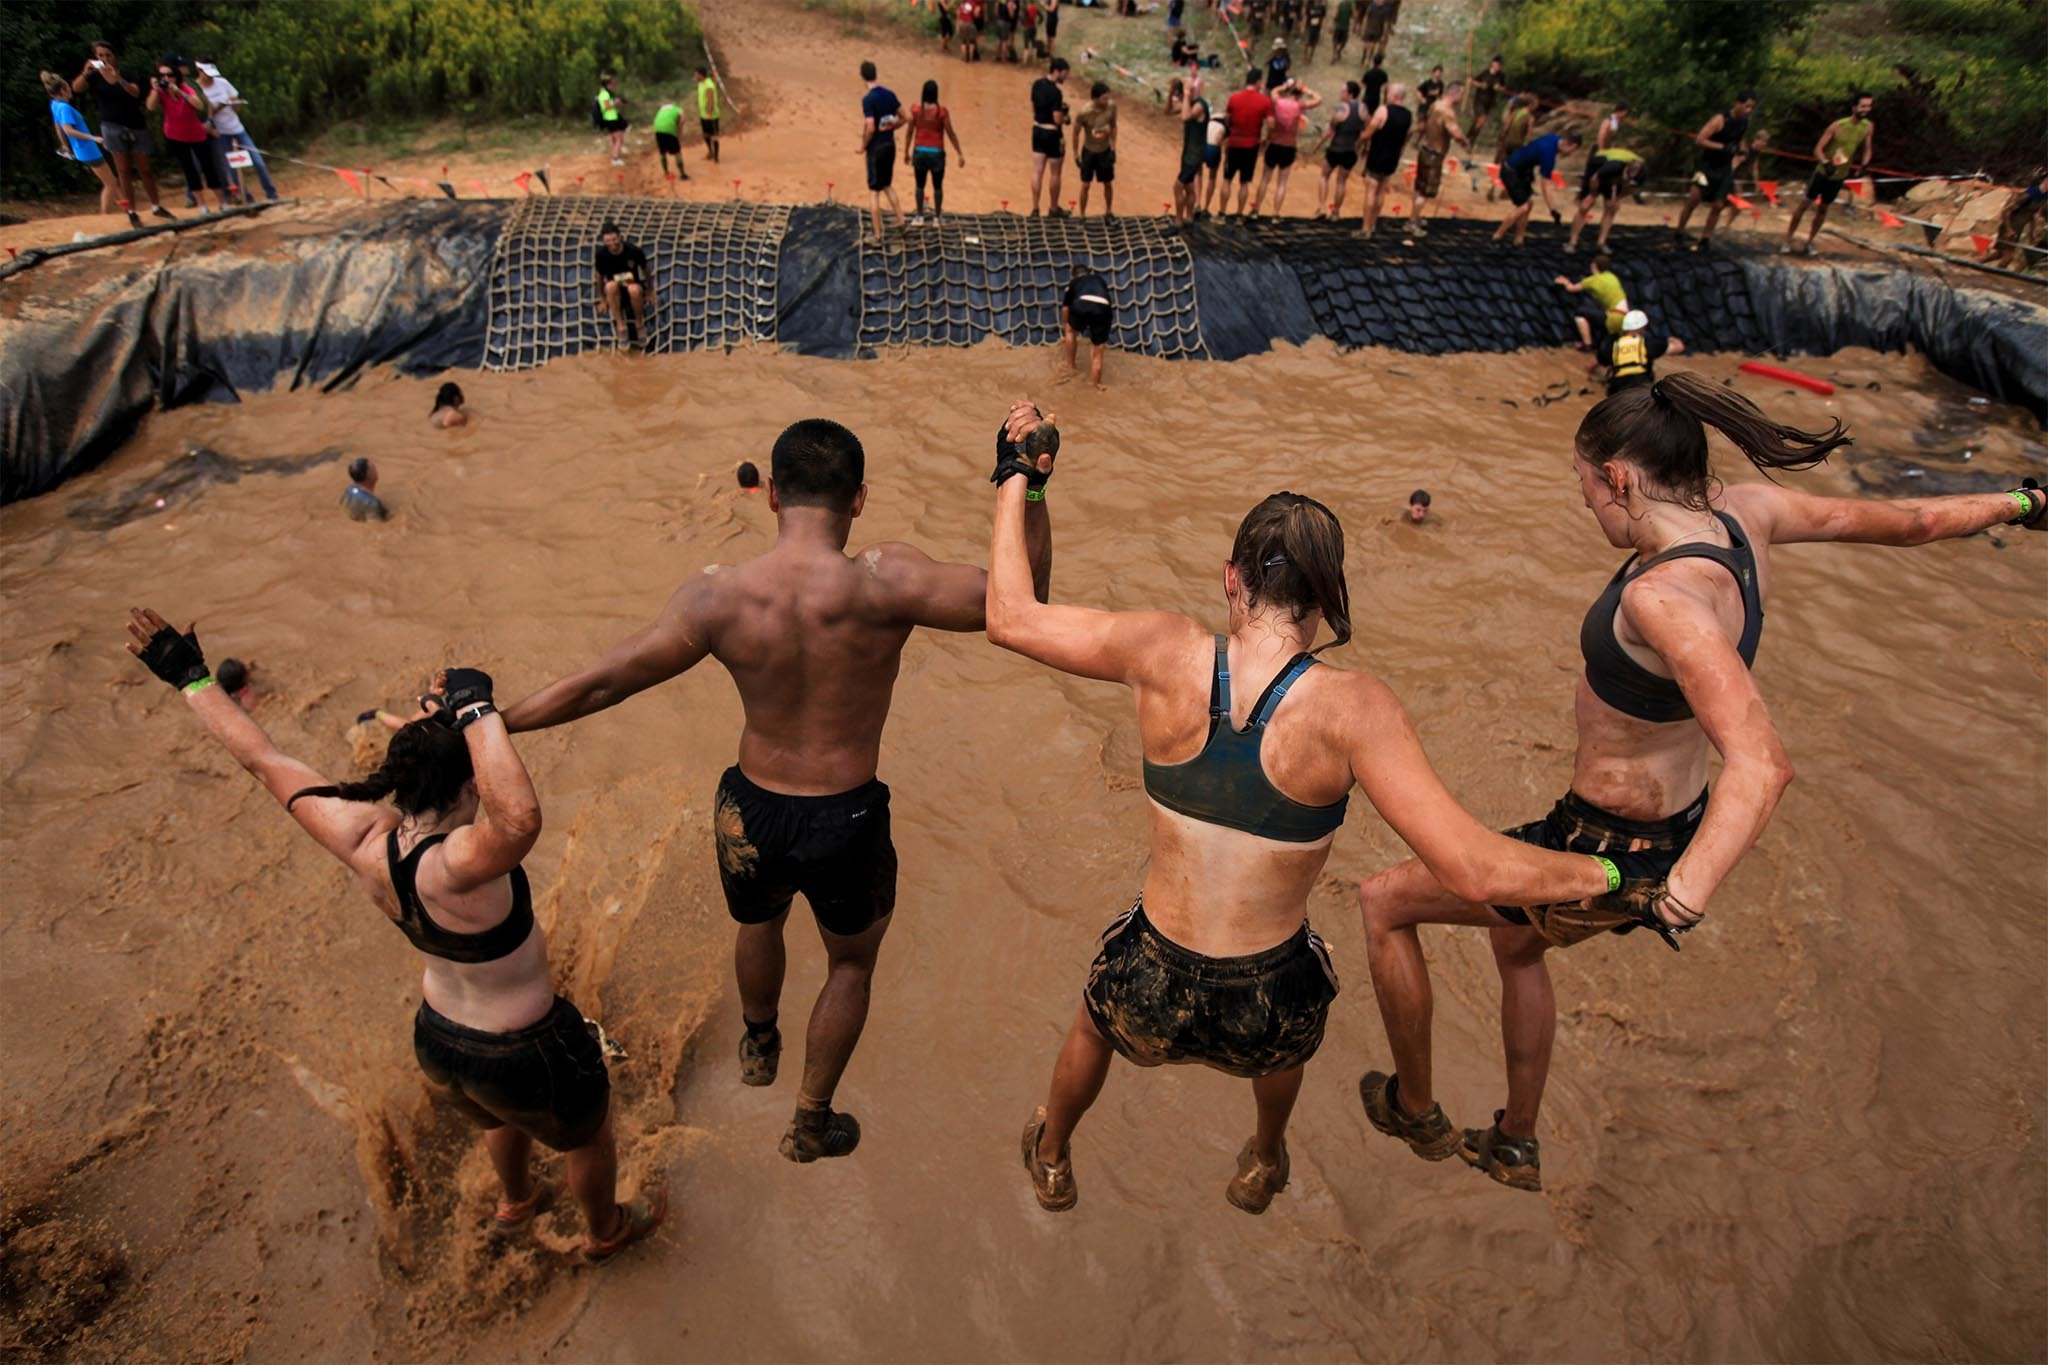 Tough Mudder obstacle course race